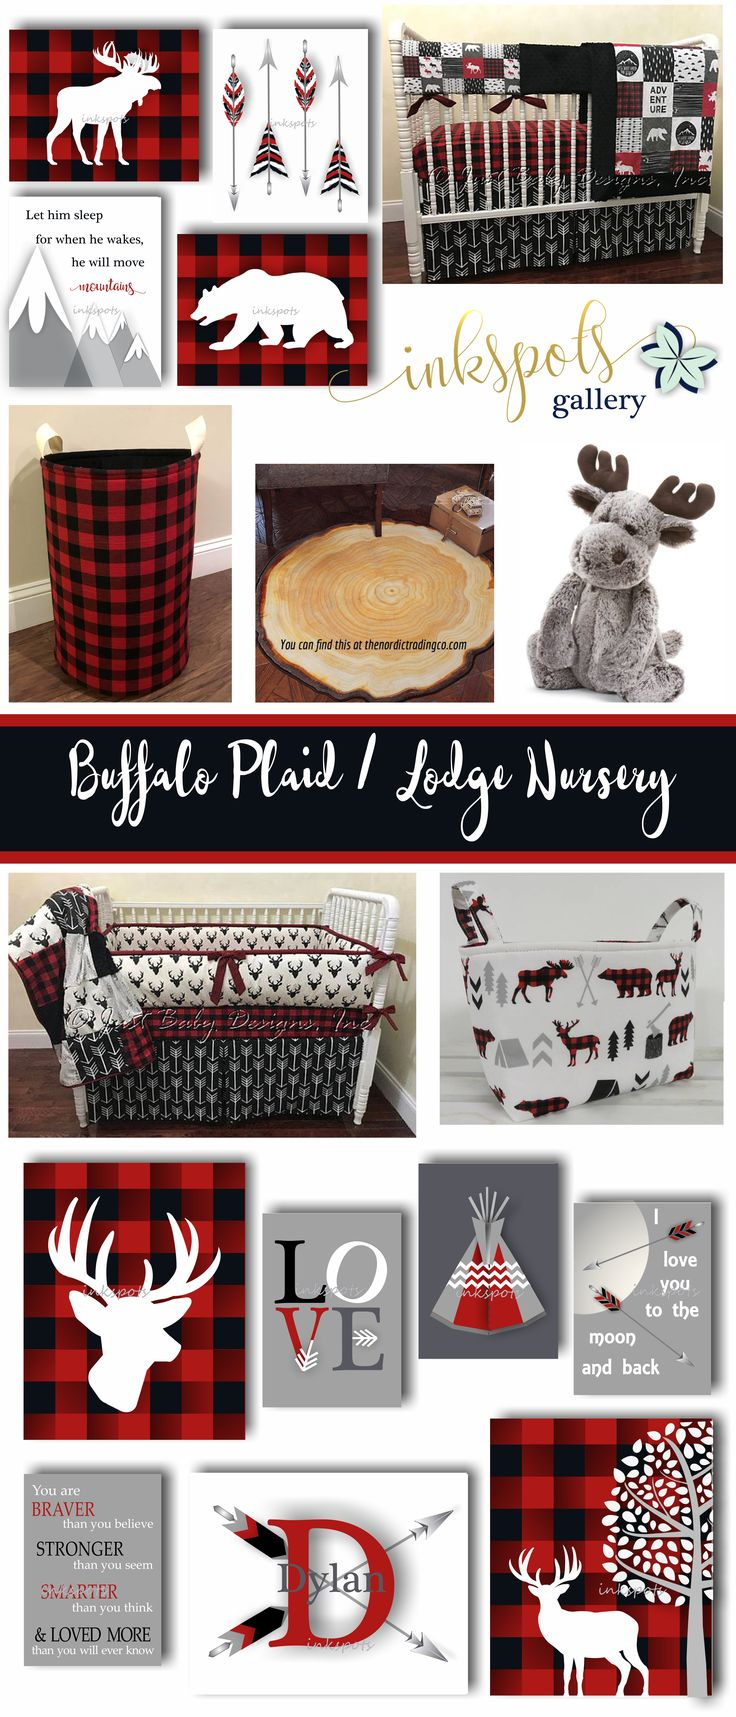 Warm and Cozy - It's the Buffalo Plaid Nursery Theme - Nothing says cozy and comfortable like buffalo plaid! Create a homey nursery for your little Lumberjack with some of these warm and snuggly nursery ideas. Customized print collections @etsy.com/shop/inkspotsgallery?ref=seller-platform-mcnav&search_query=buffalo+plaid.  Nursery bedding @etsy.com/listing/522447543.  Hamper @etsy.com/listing/557368303. Moose @https://shop.nordstrom.com/s/jellycat-woodland-babe-moose-stuffed-animal/4410483